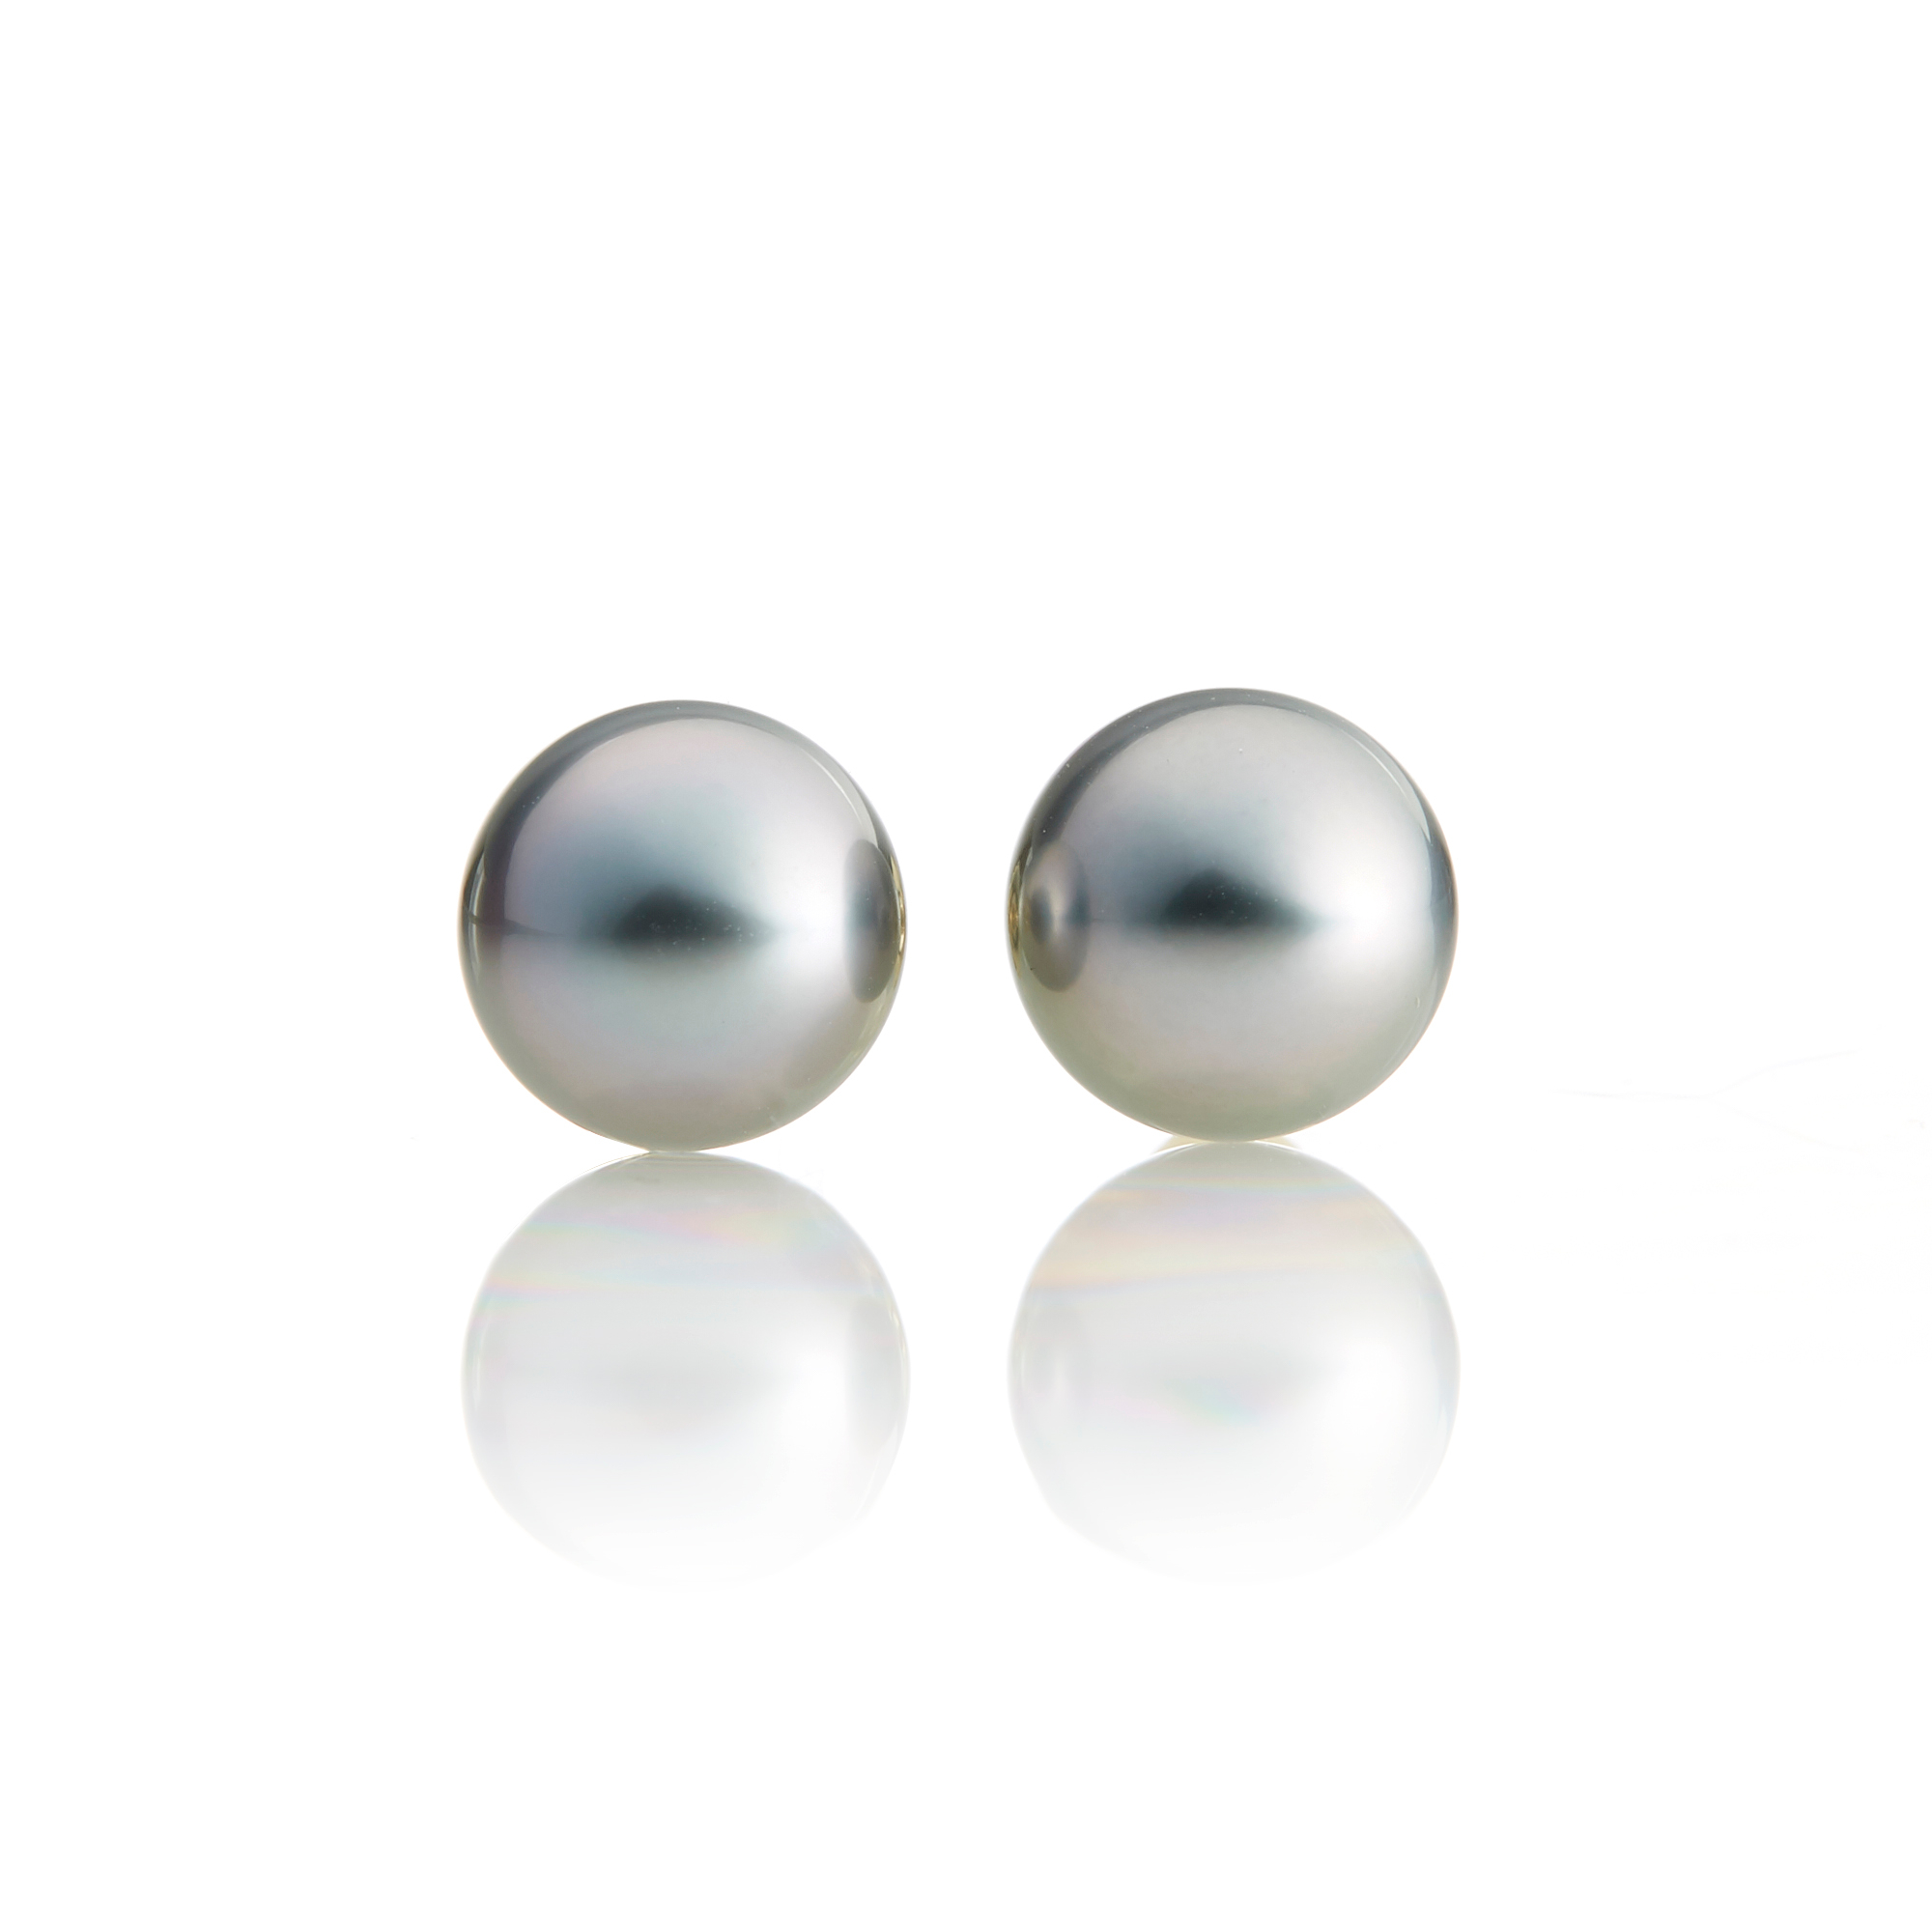 Gump's Round Tahitian Pearl Stud Earrings